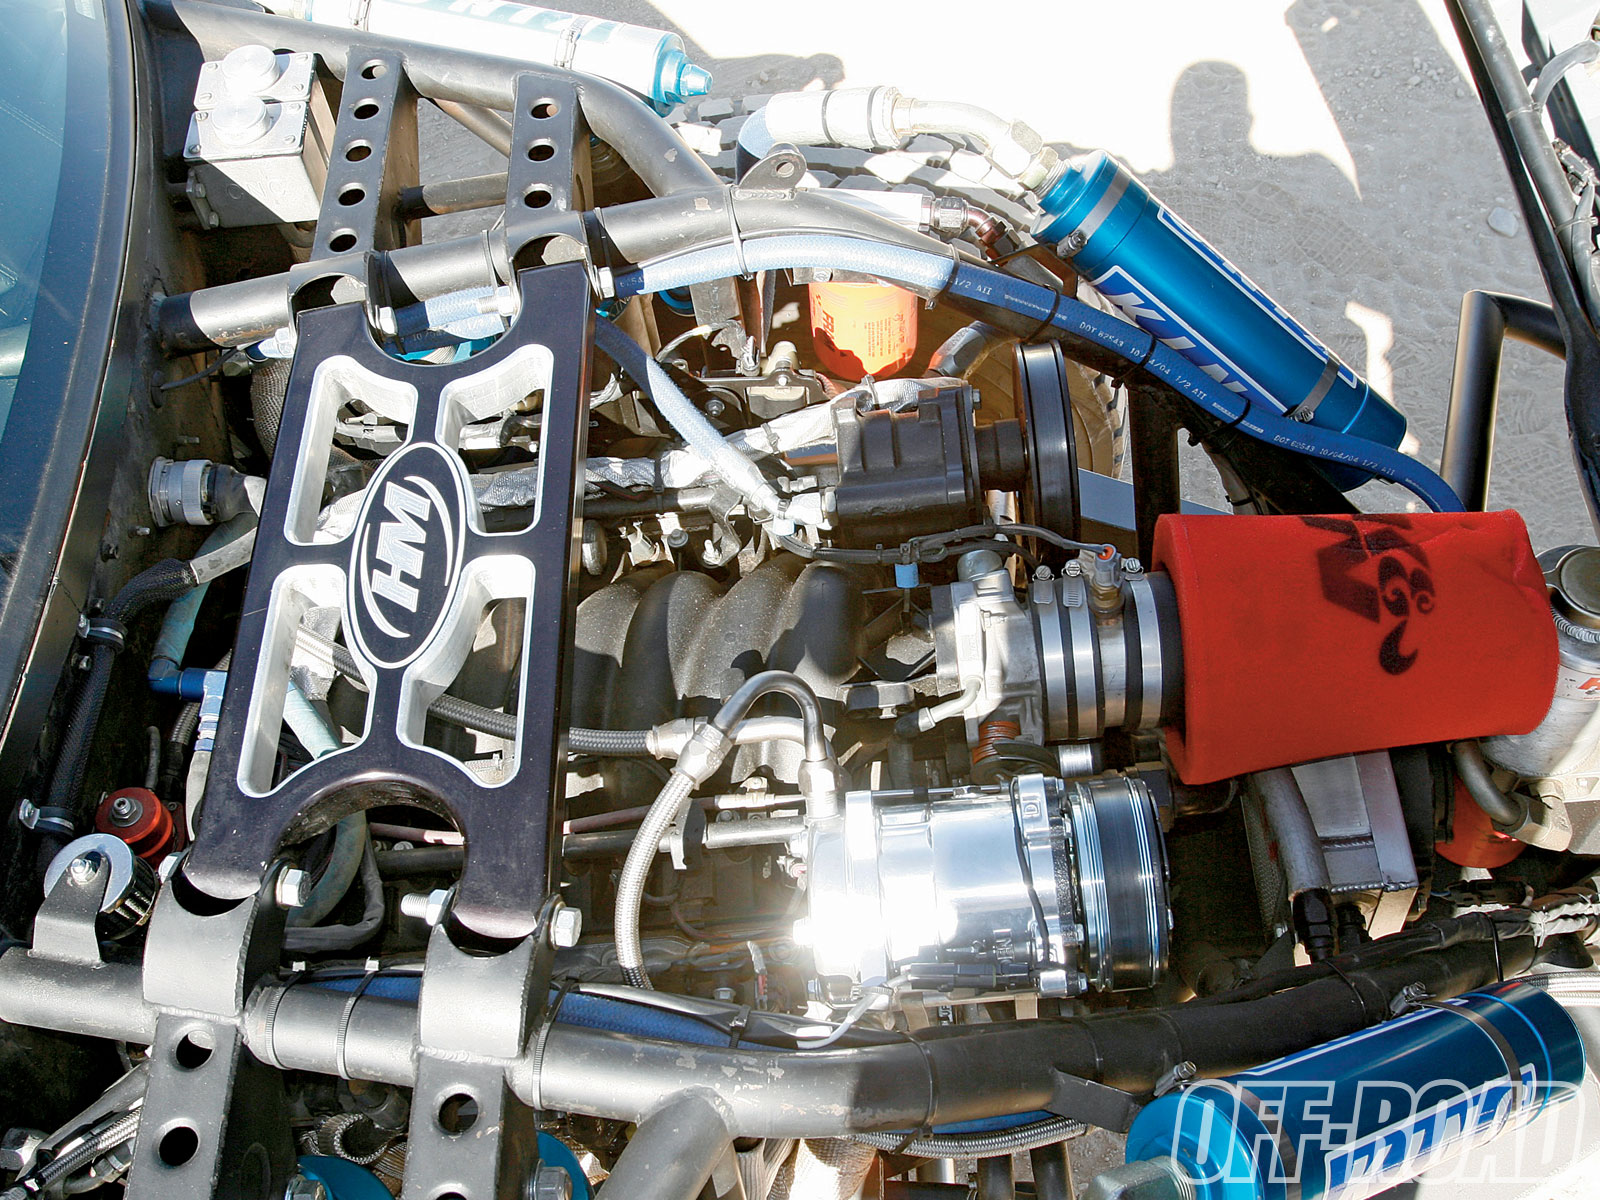 H&M added a custom aluminum cross bar across the engine to allow each access to the motor as well as good looks. Sometimes the little things make all the difference. The blue anodized reservoir cans from King also carry that finishing touch.